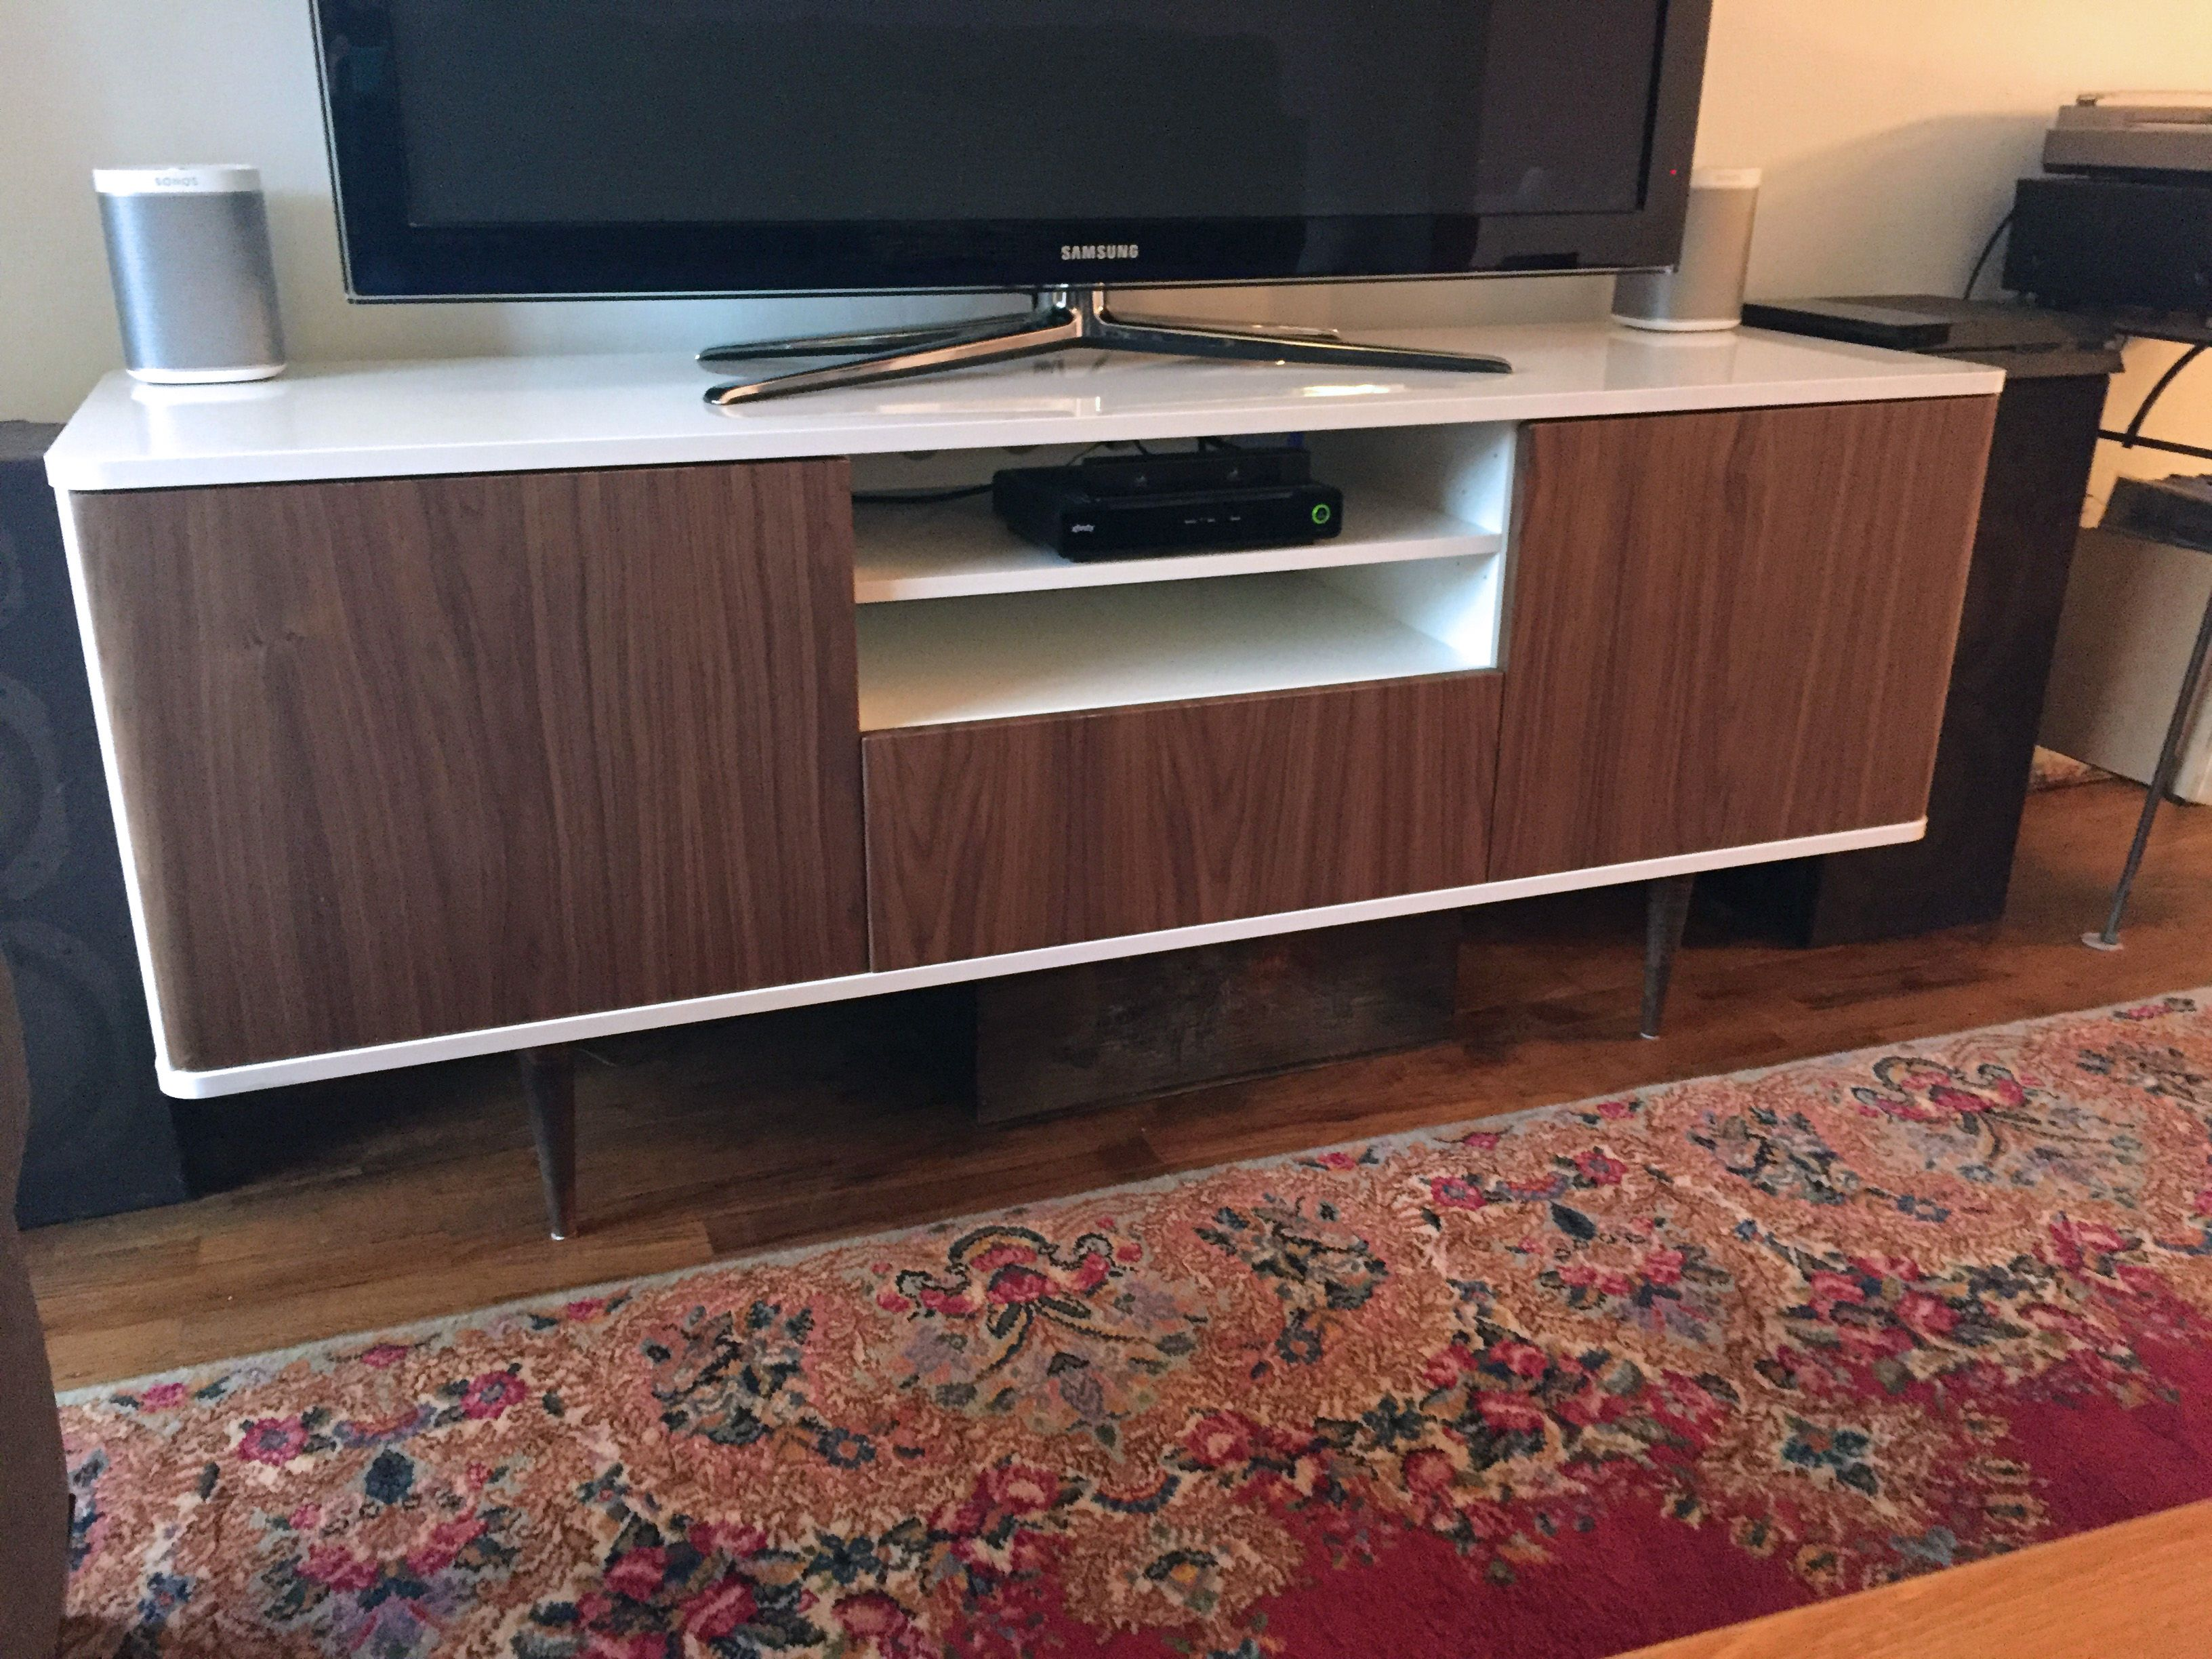 Modern Credenza Ikea : Ikea mid century modern credenza hack u2013 our ugly house condo ideas